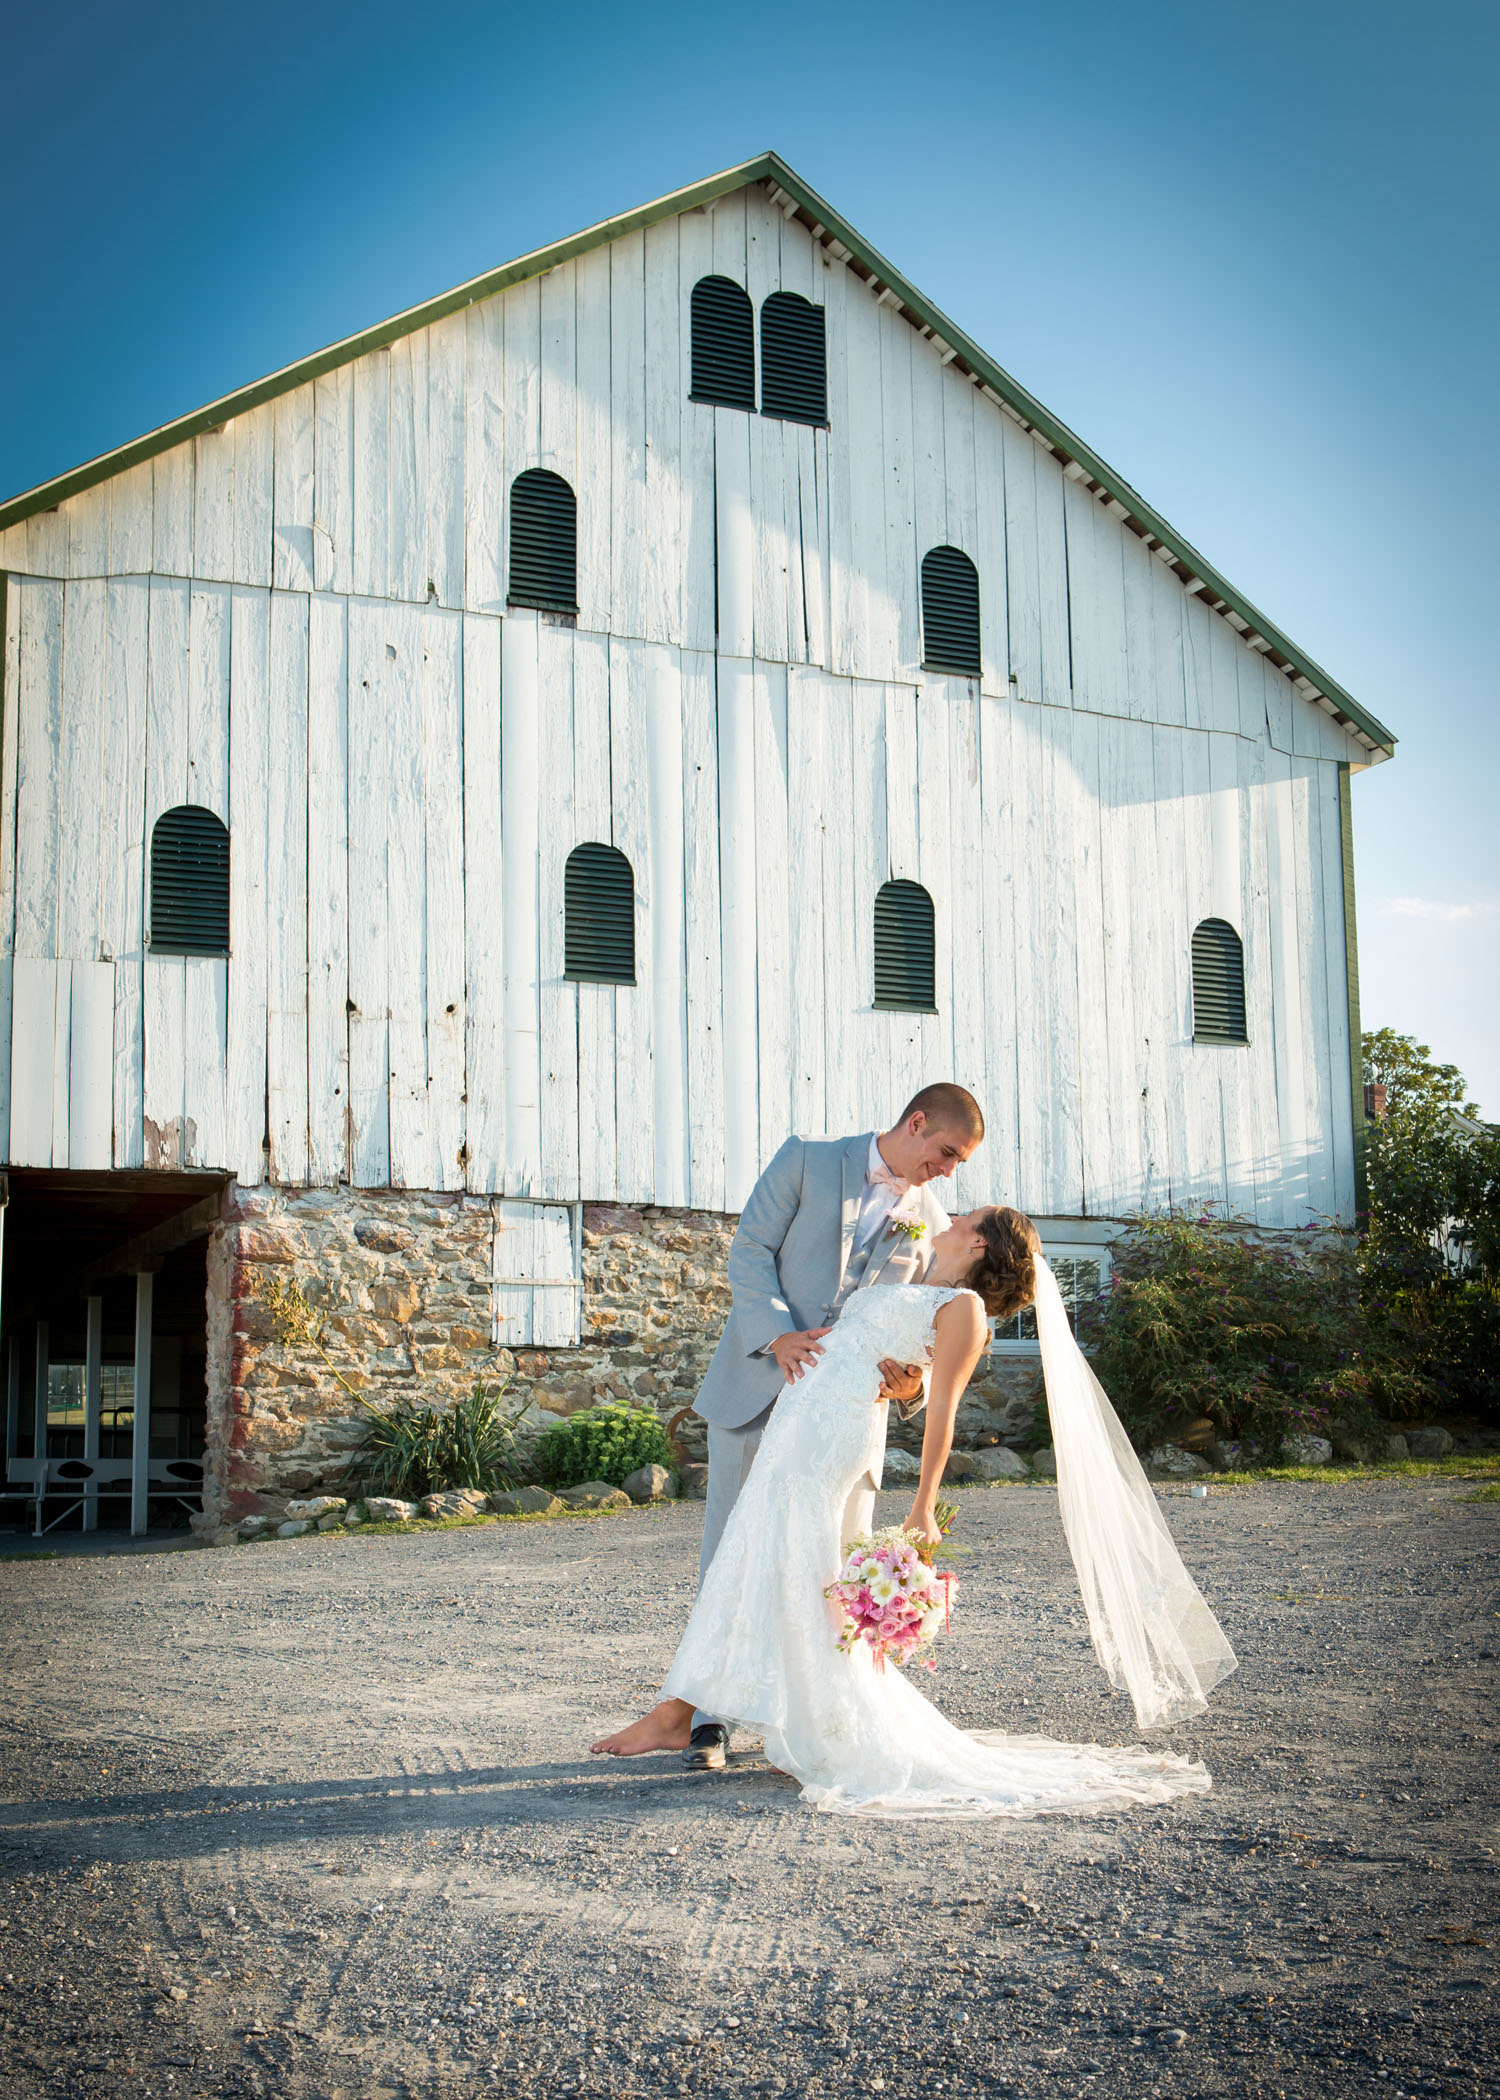 Rustic Barn Photo Op